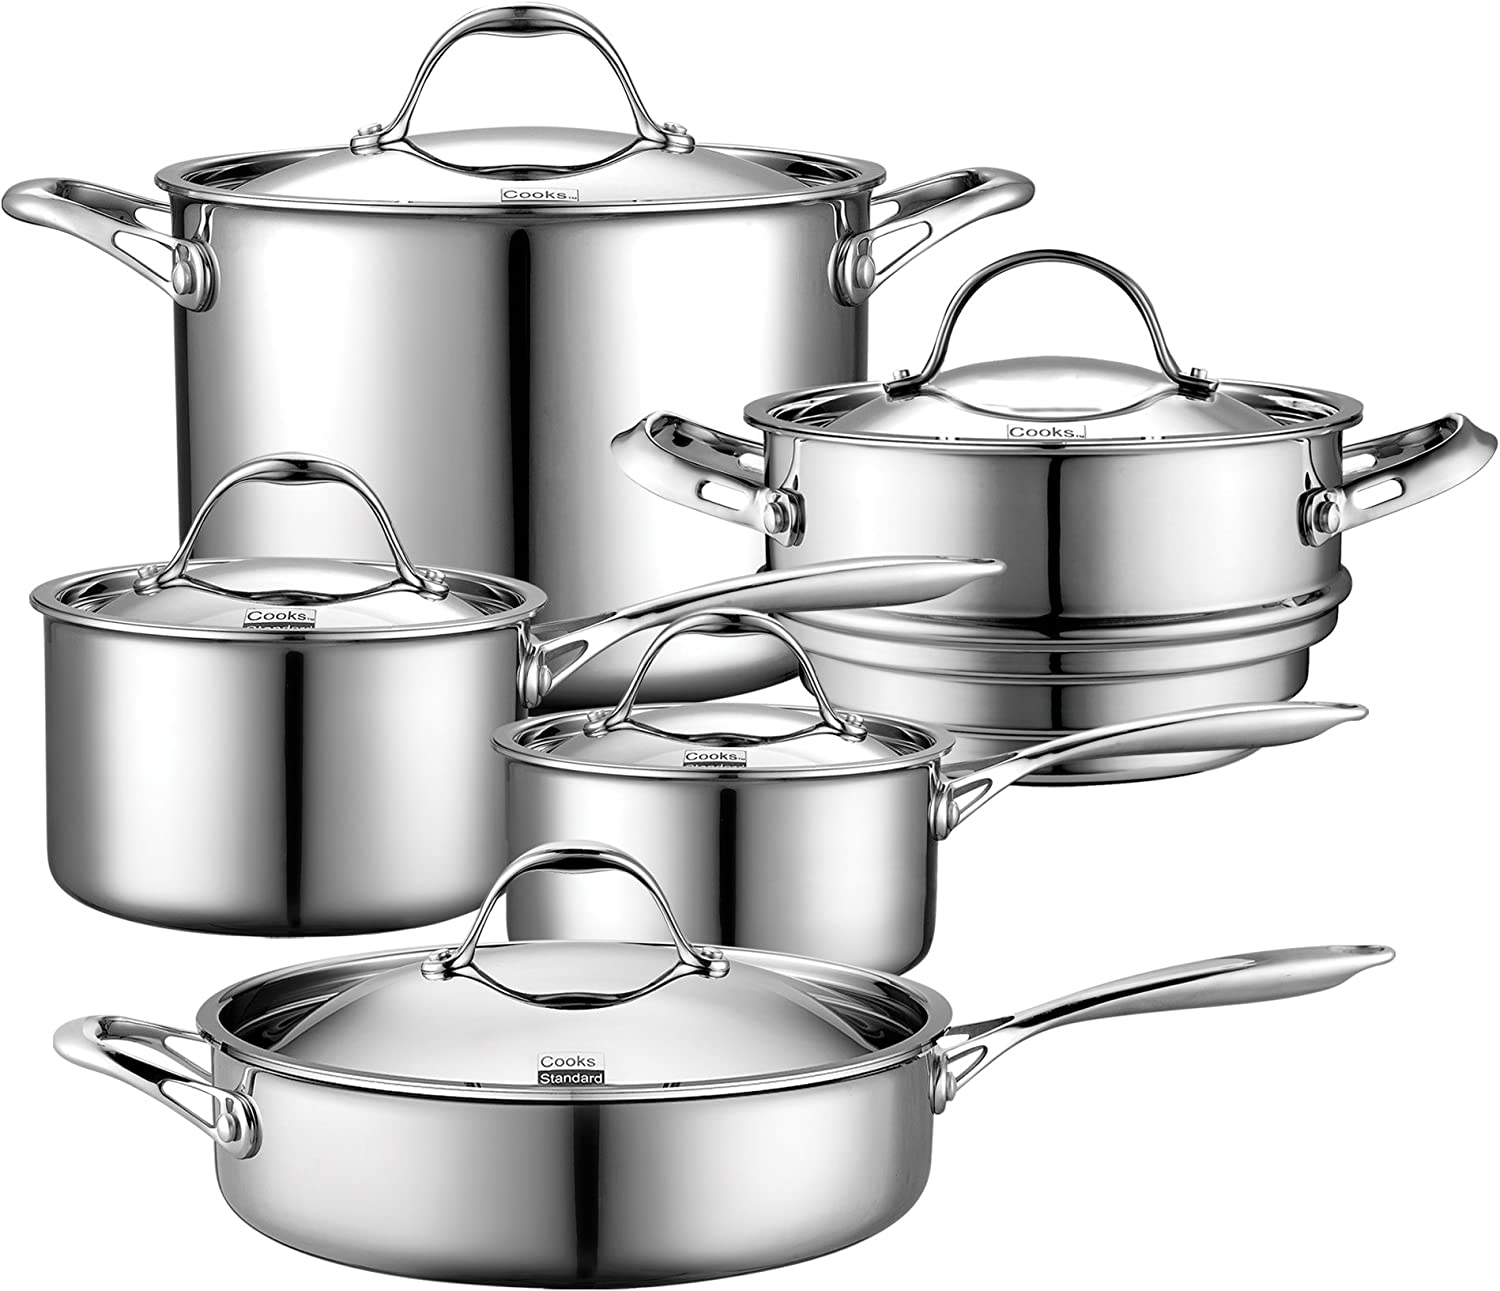 THe Best Cookware Stainless Steel Reviews. Cooks Standard 10-piece Multi-ply Clad Stainless Steel Cookware Set